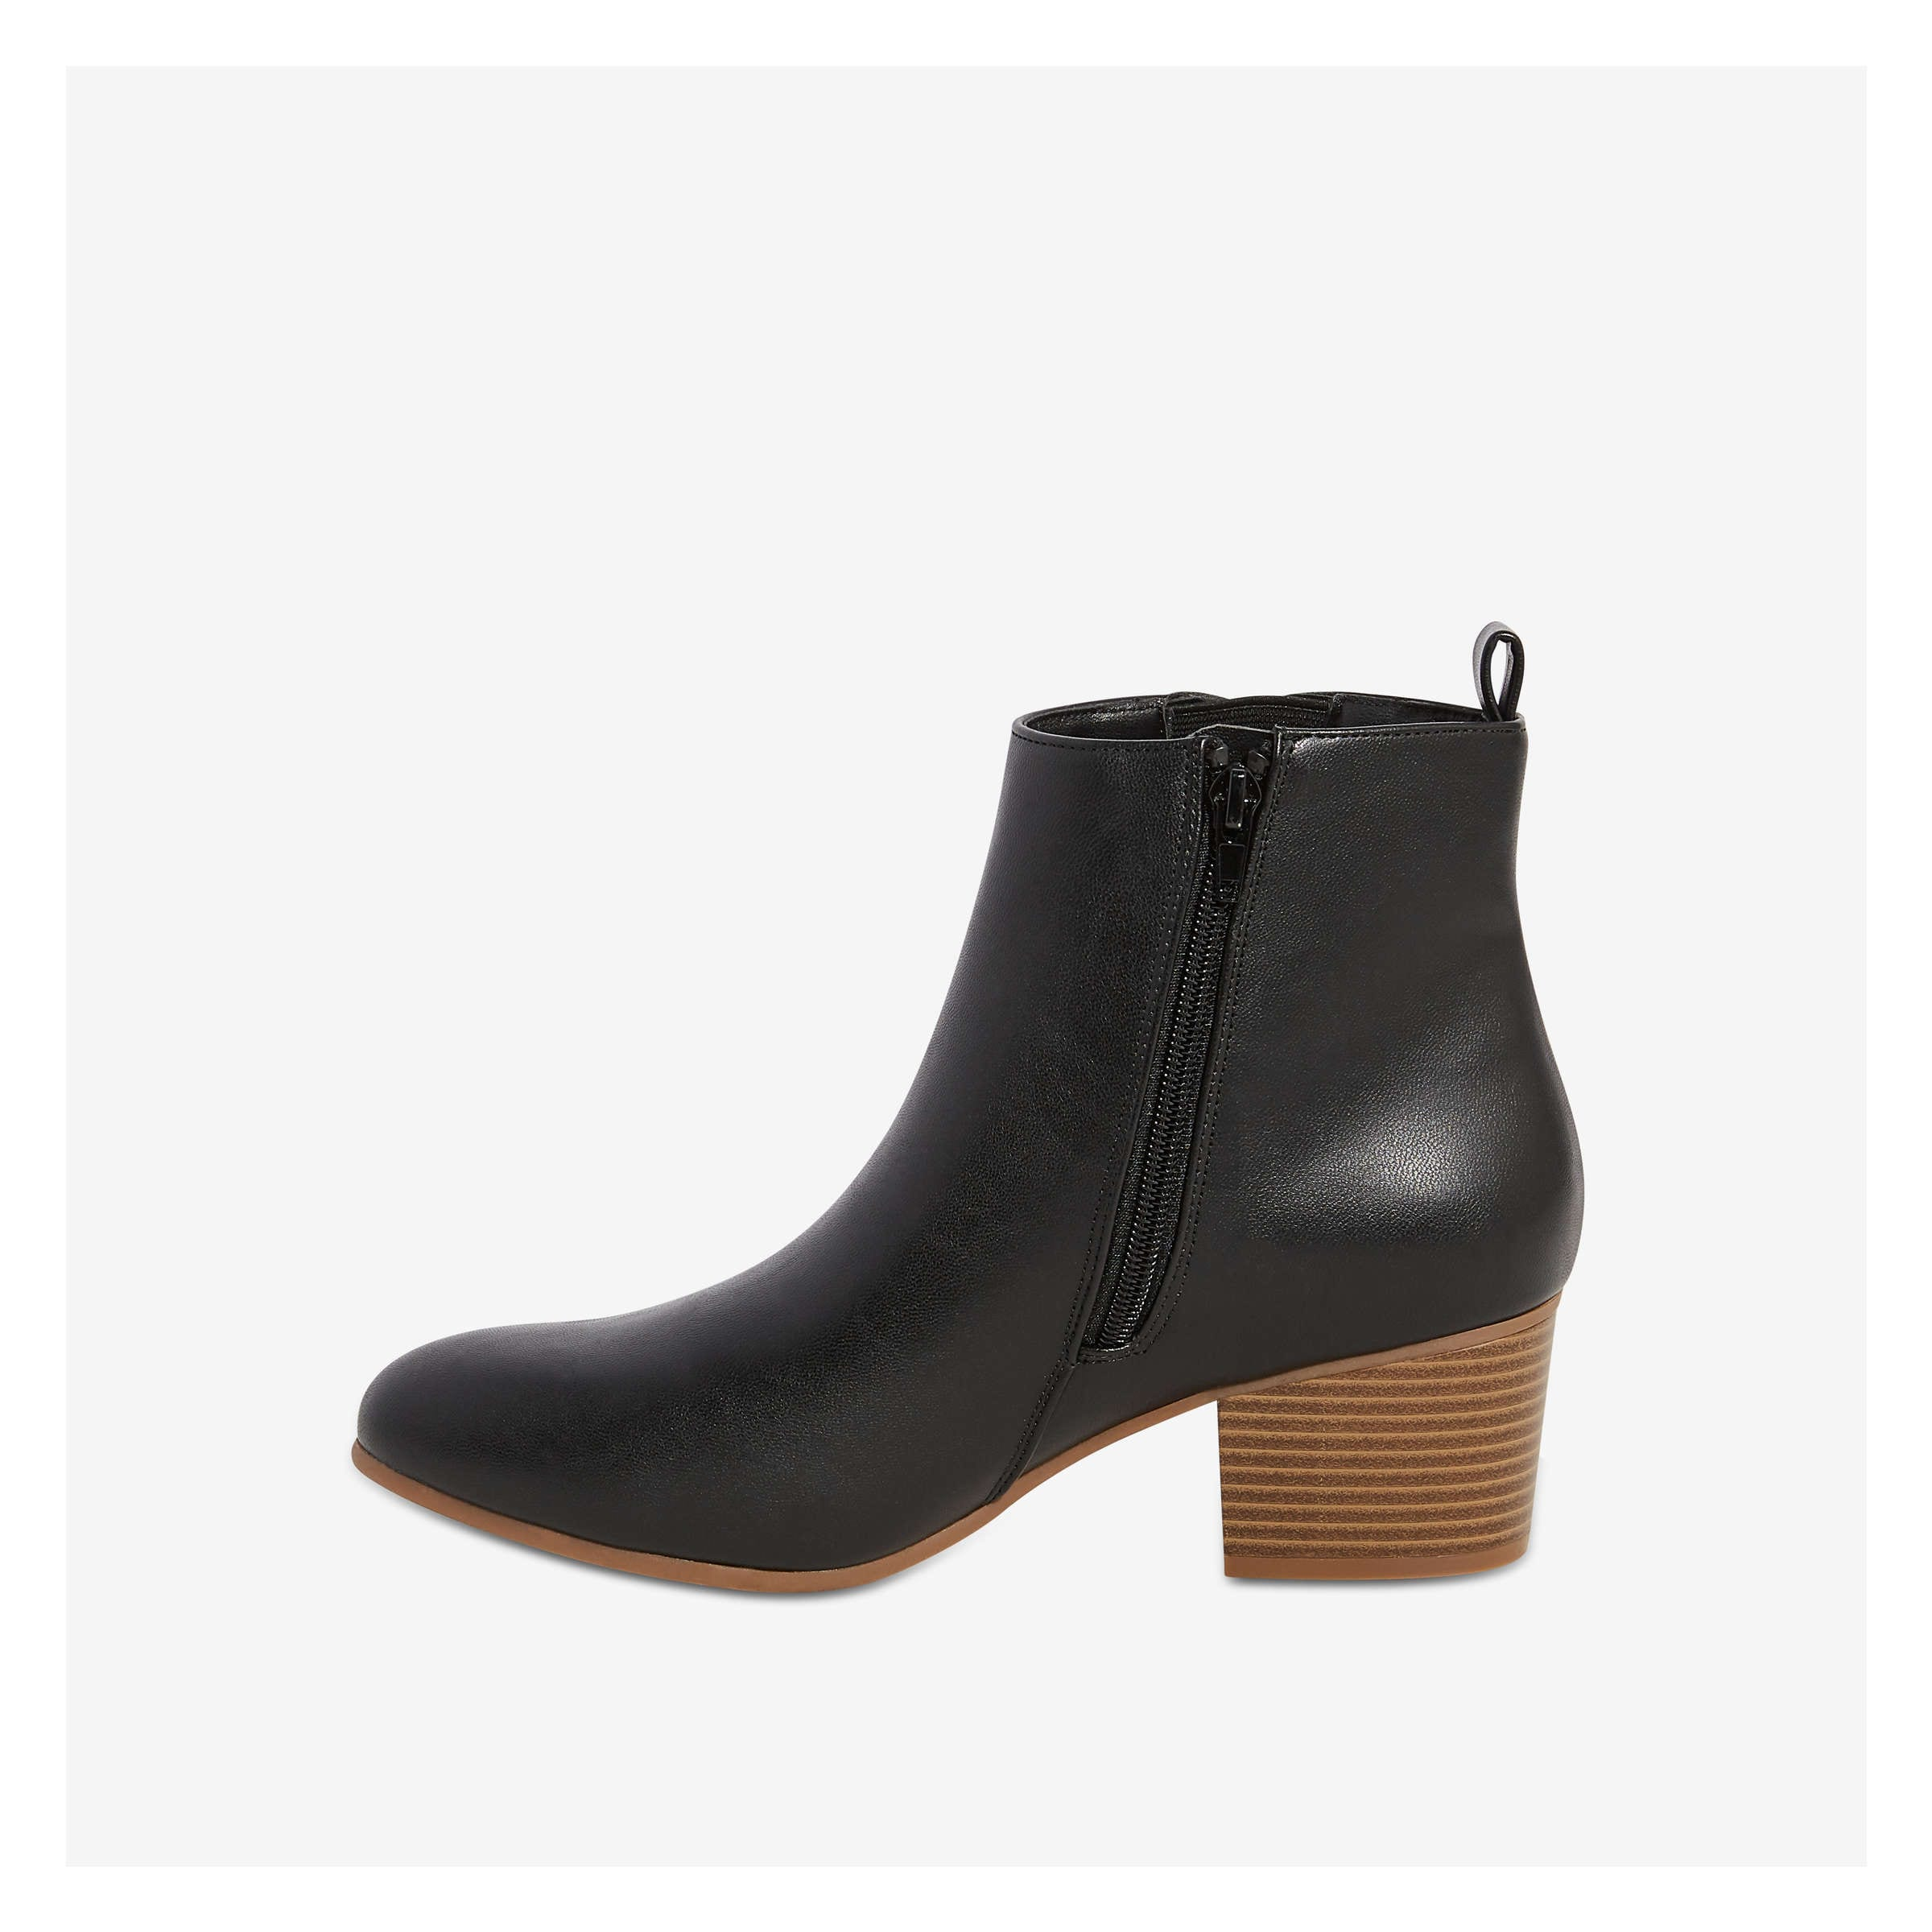 e4f3978a1d57 Stacked Heel Ankle Boot in Black from Joe Fresh